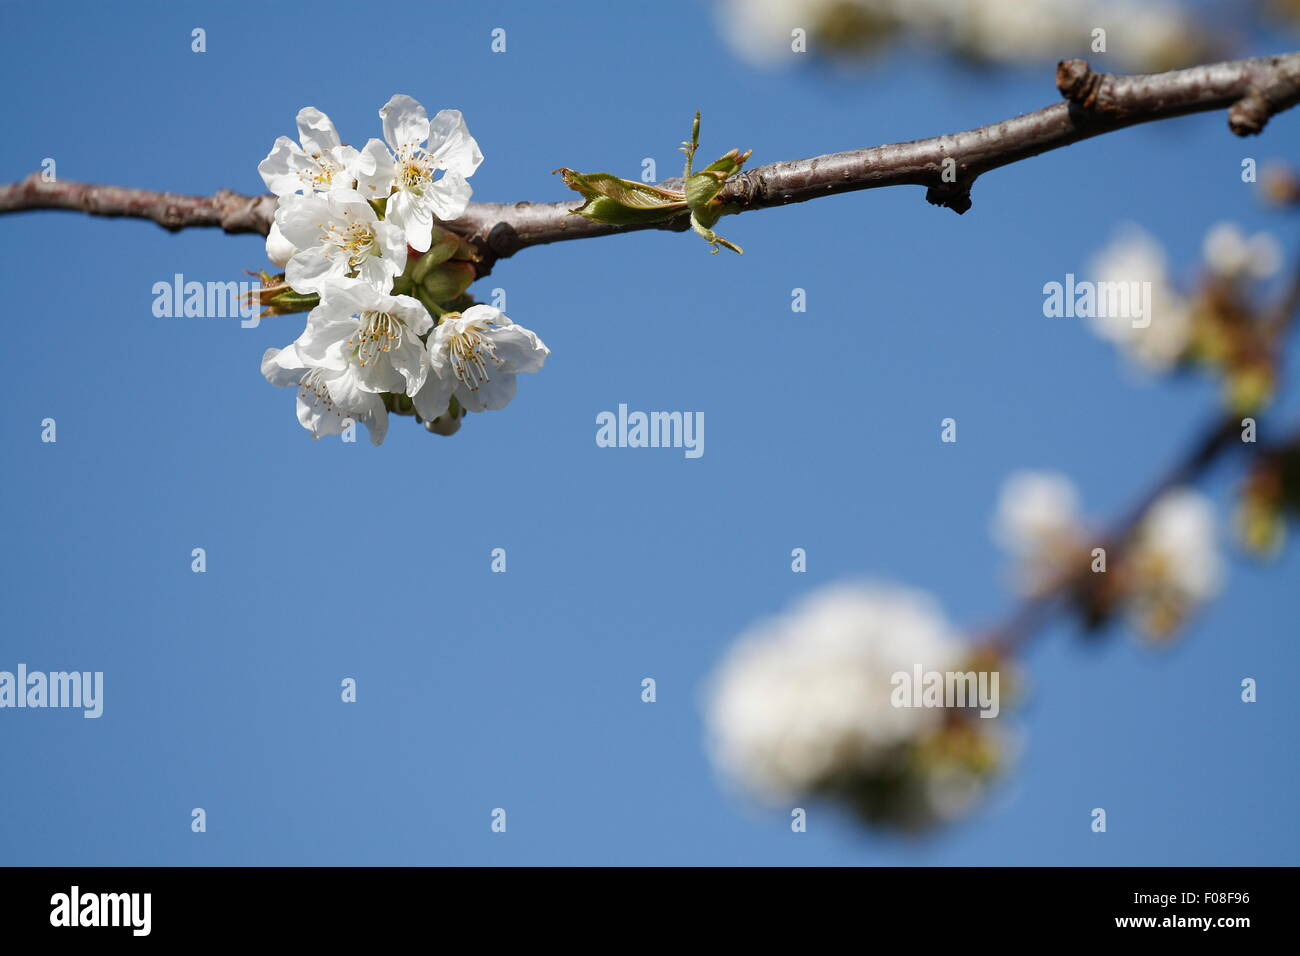 White chery flower on a blue sky background. - Stock Image